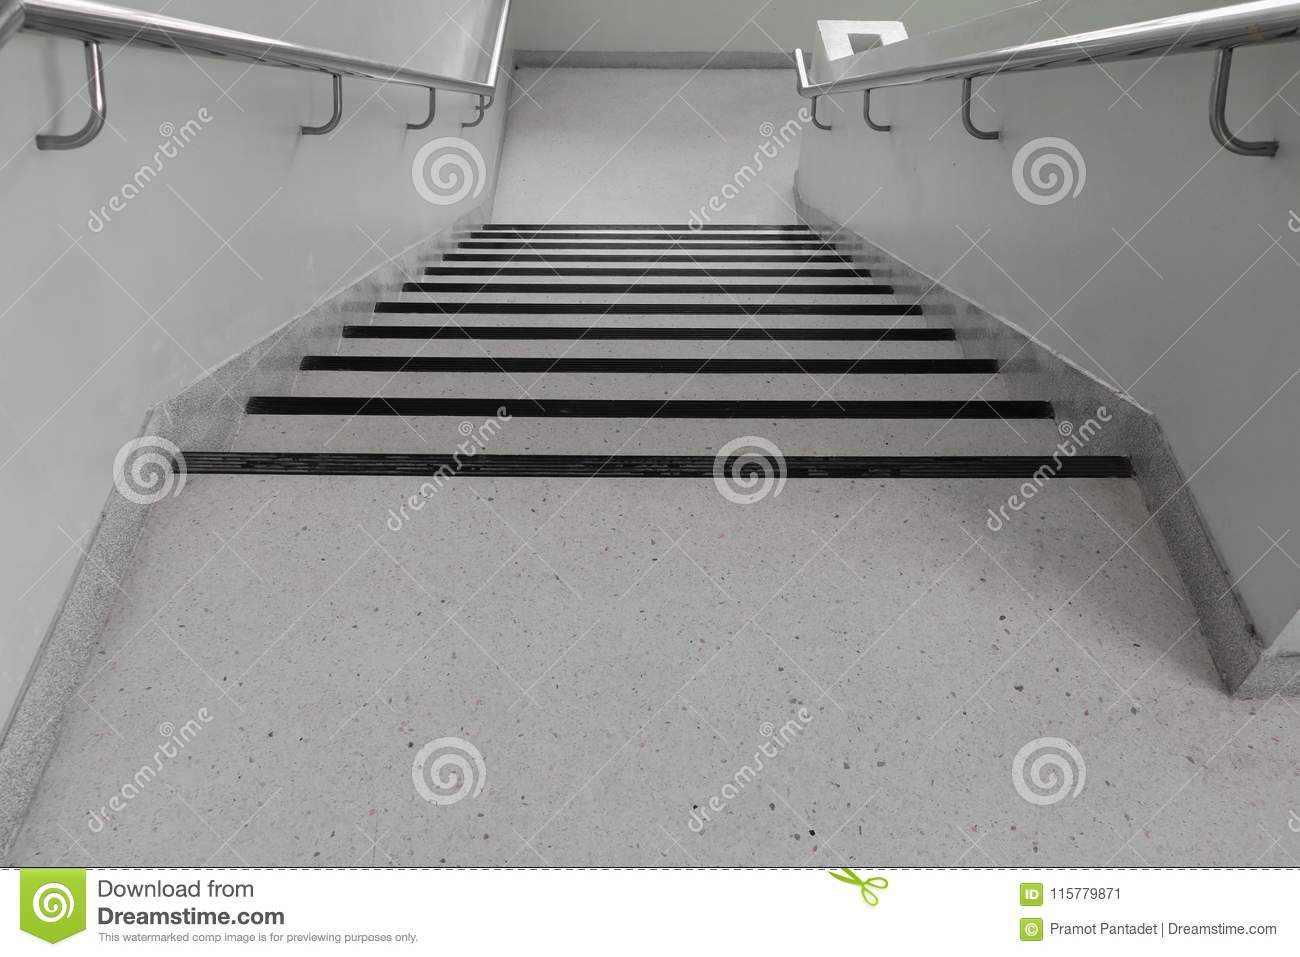 Download Terrazzo Floor Stairs Walkway Down Stock Image   Image Of Hotel,  Classical: 115779871